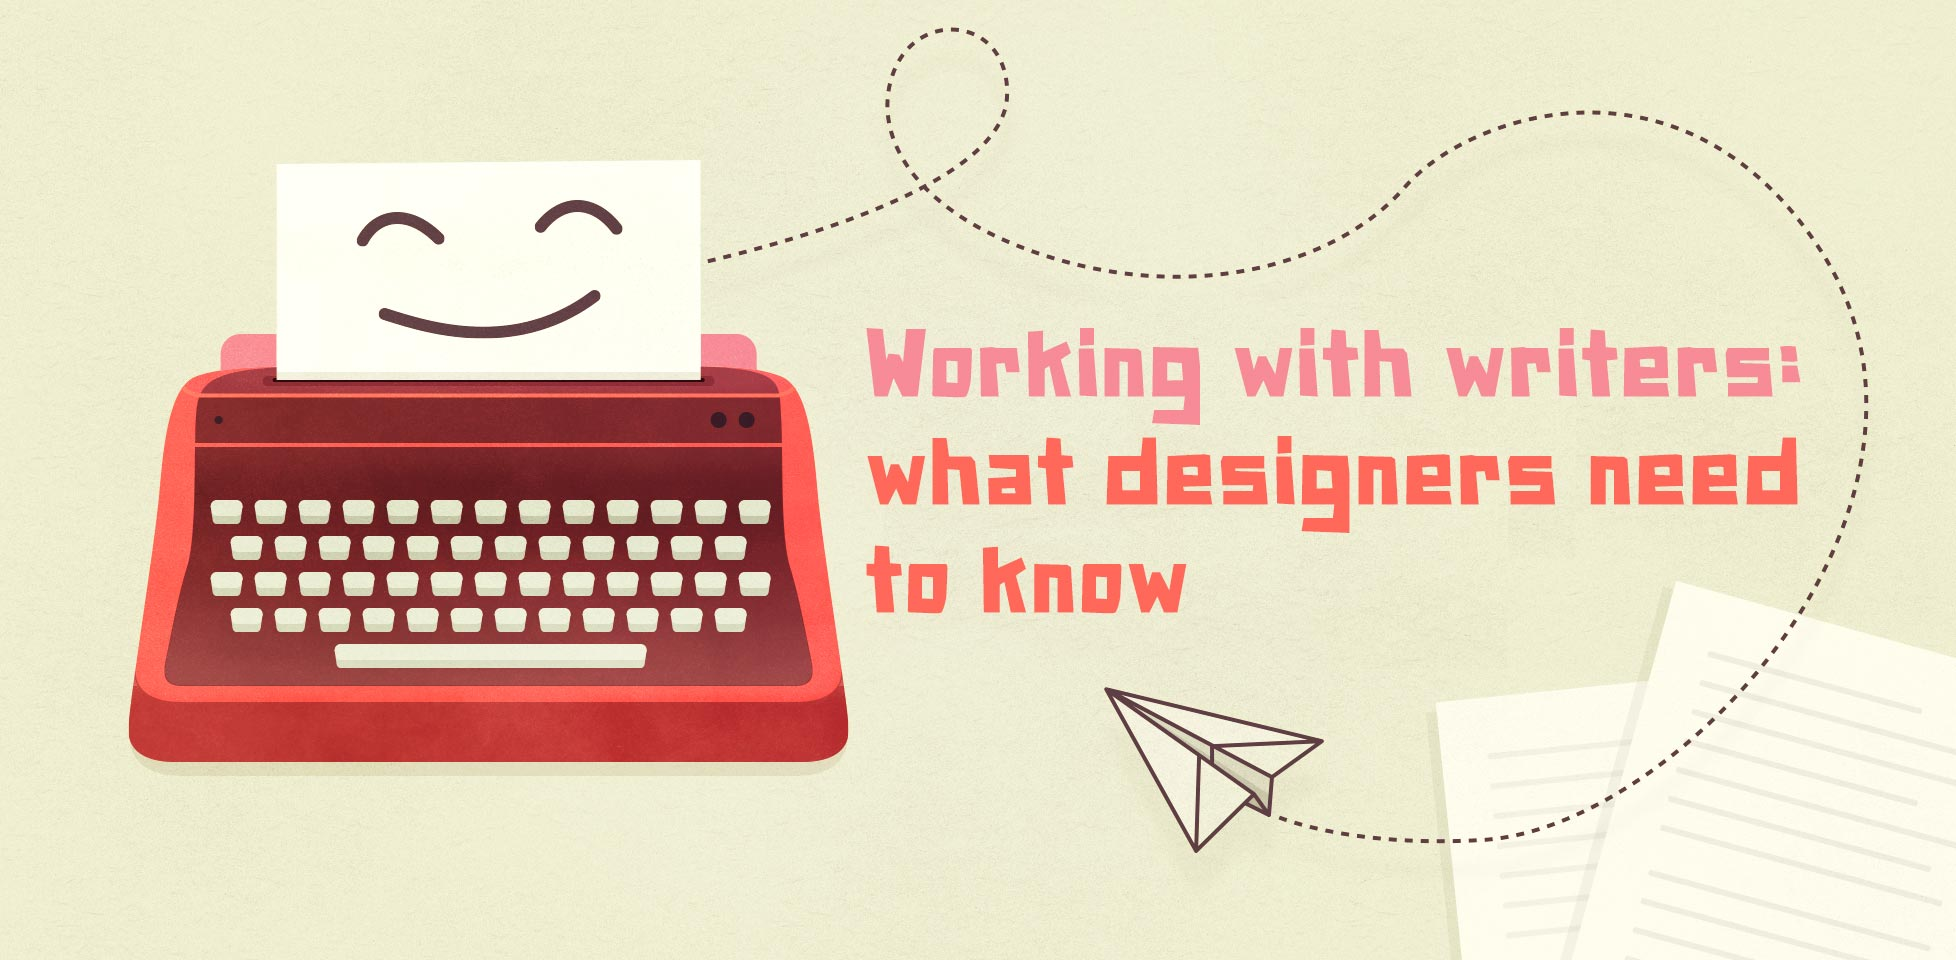 Working with writers: what designers need to know